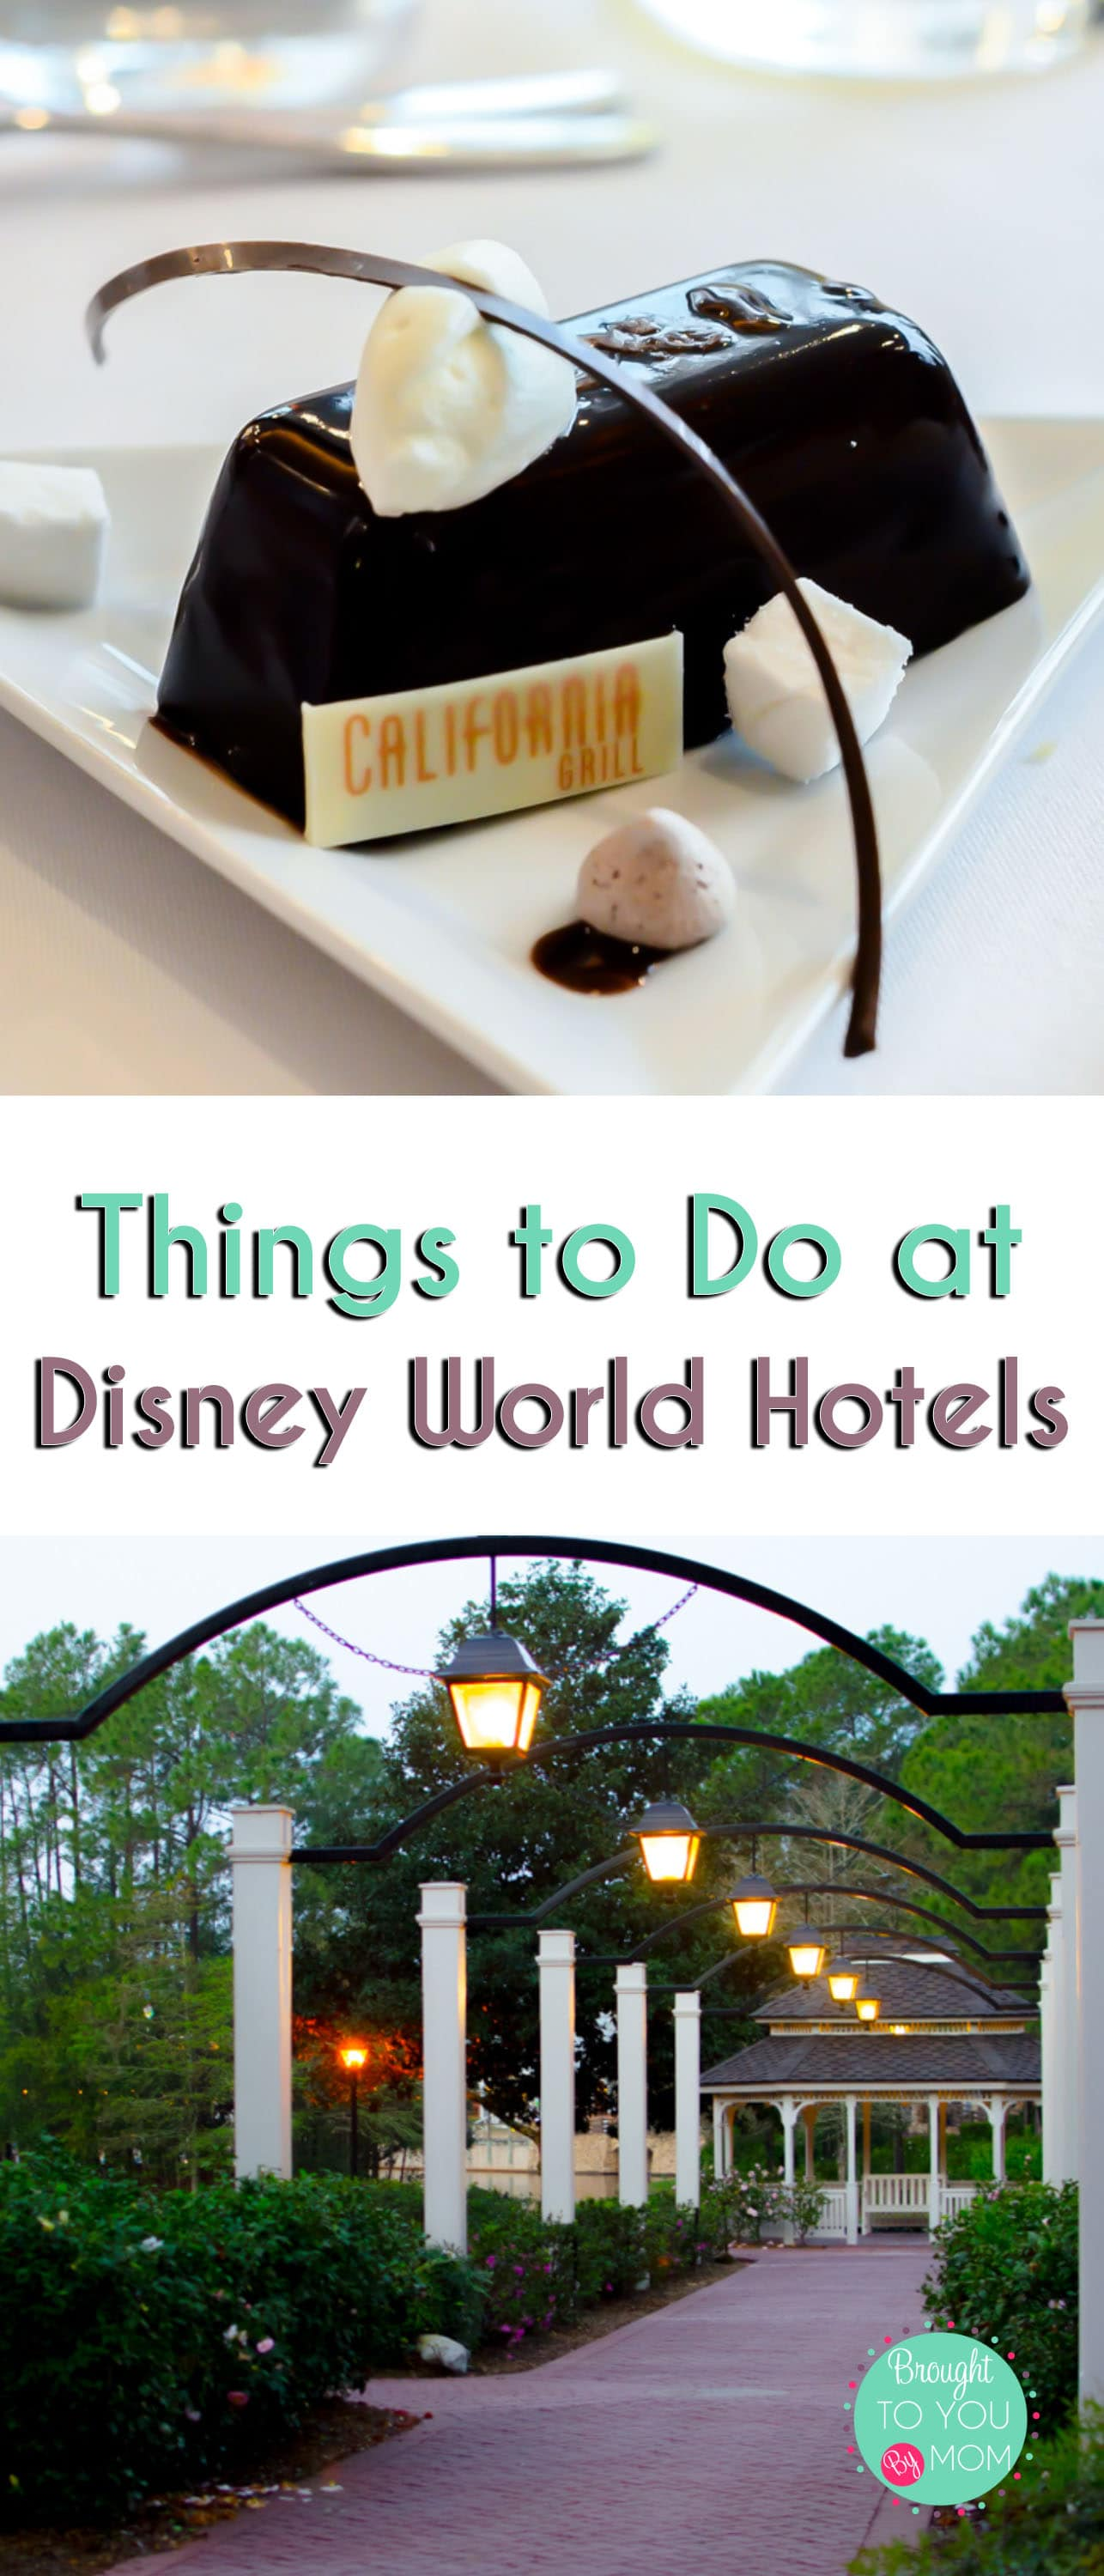 If you are traveling to Walt Disney World, there are many things to do at Disney World hotels. Check out what to do at Disney World hotels and Disney World hotel activities. #DisneySMMC #DisneyWorld #hotels #travel